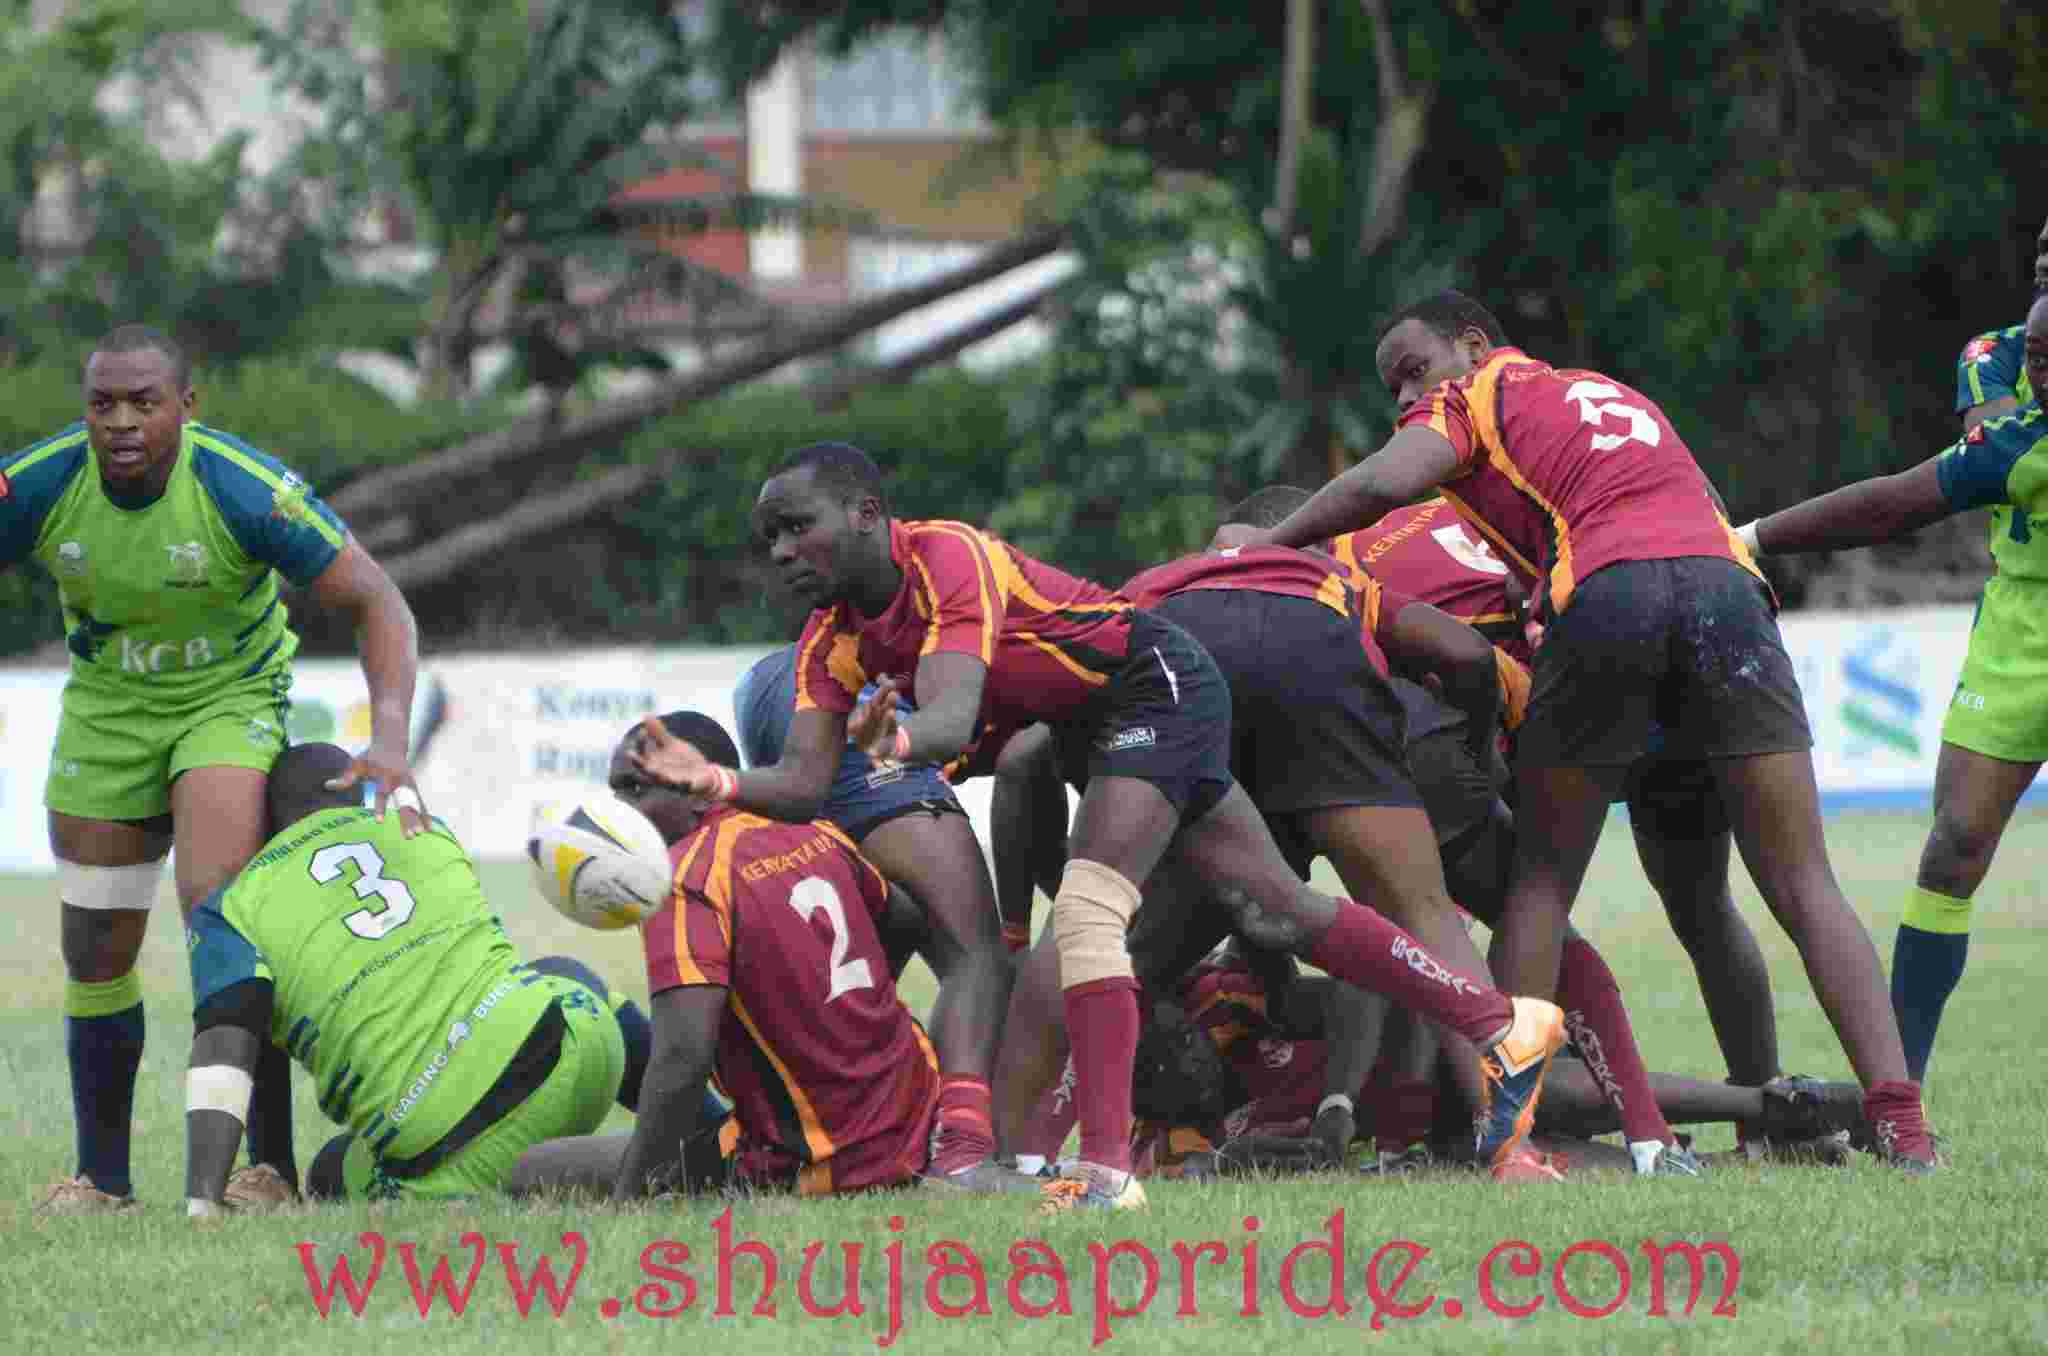 Blakblad squad to Prinsloo sevens unveiled